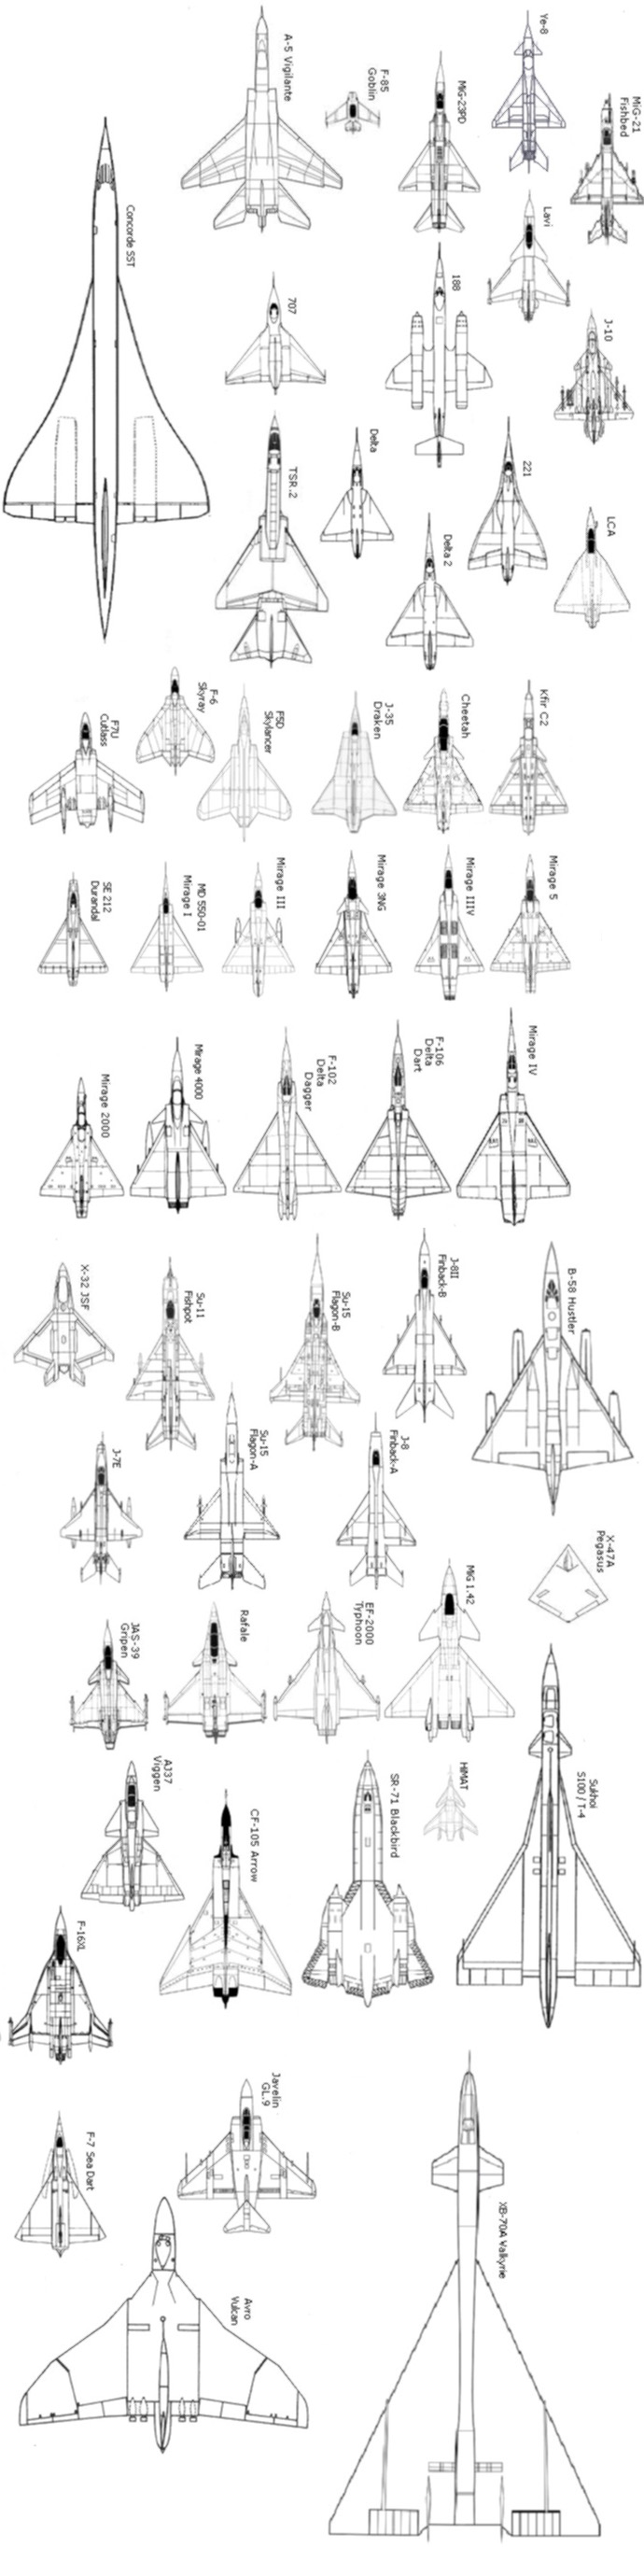 The delta wing and its variants